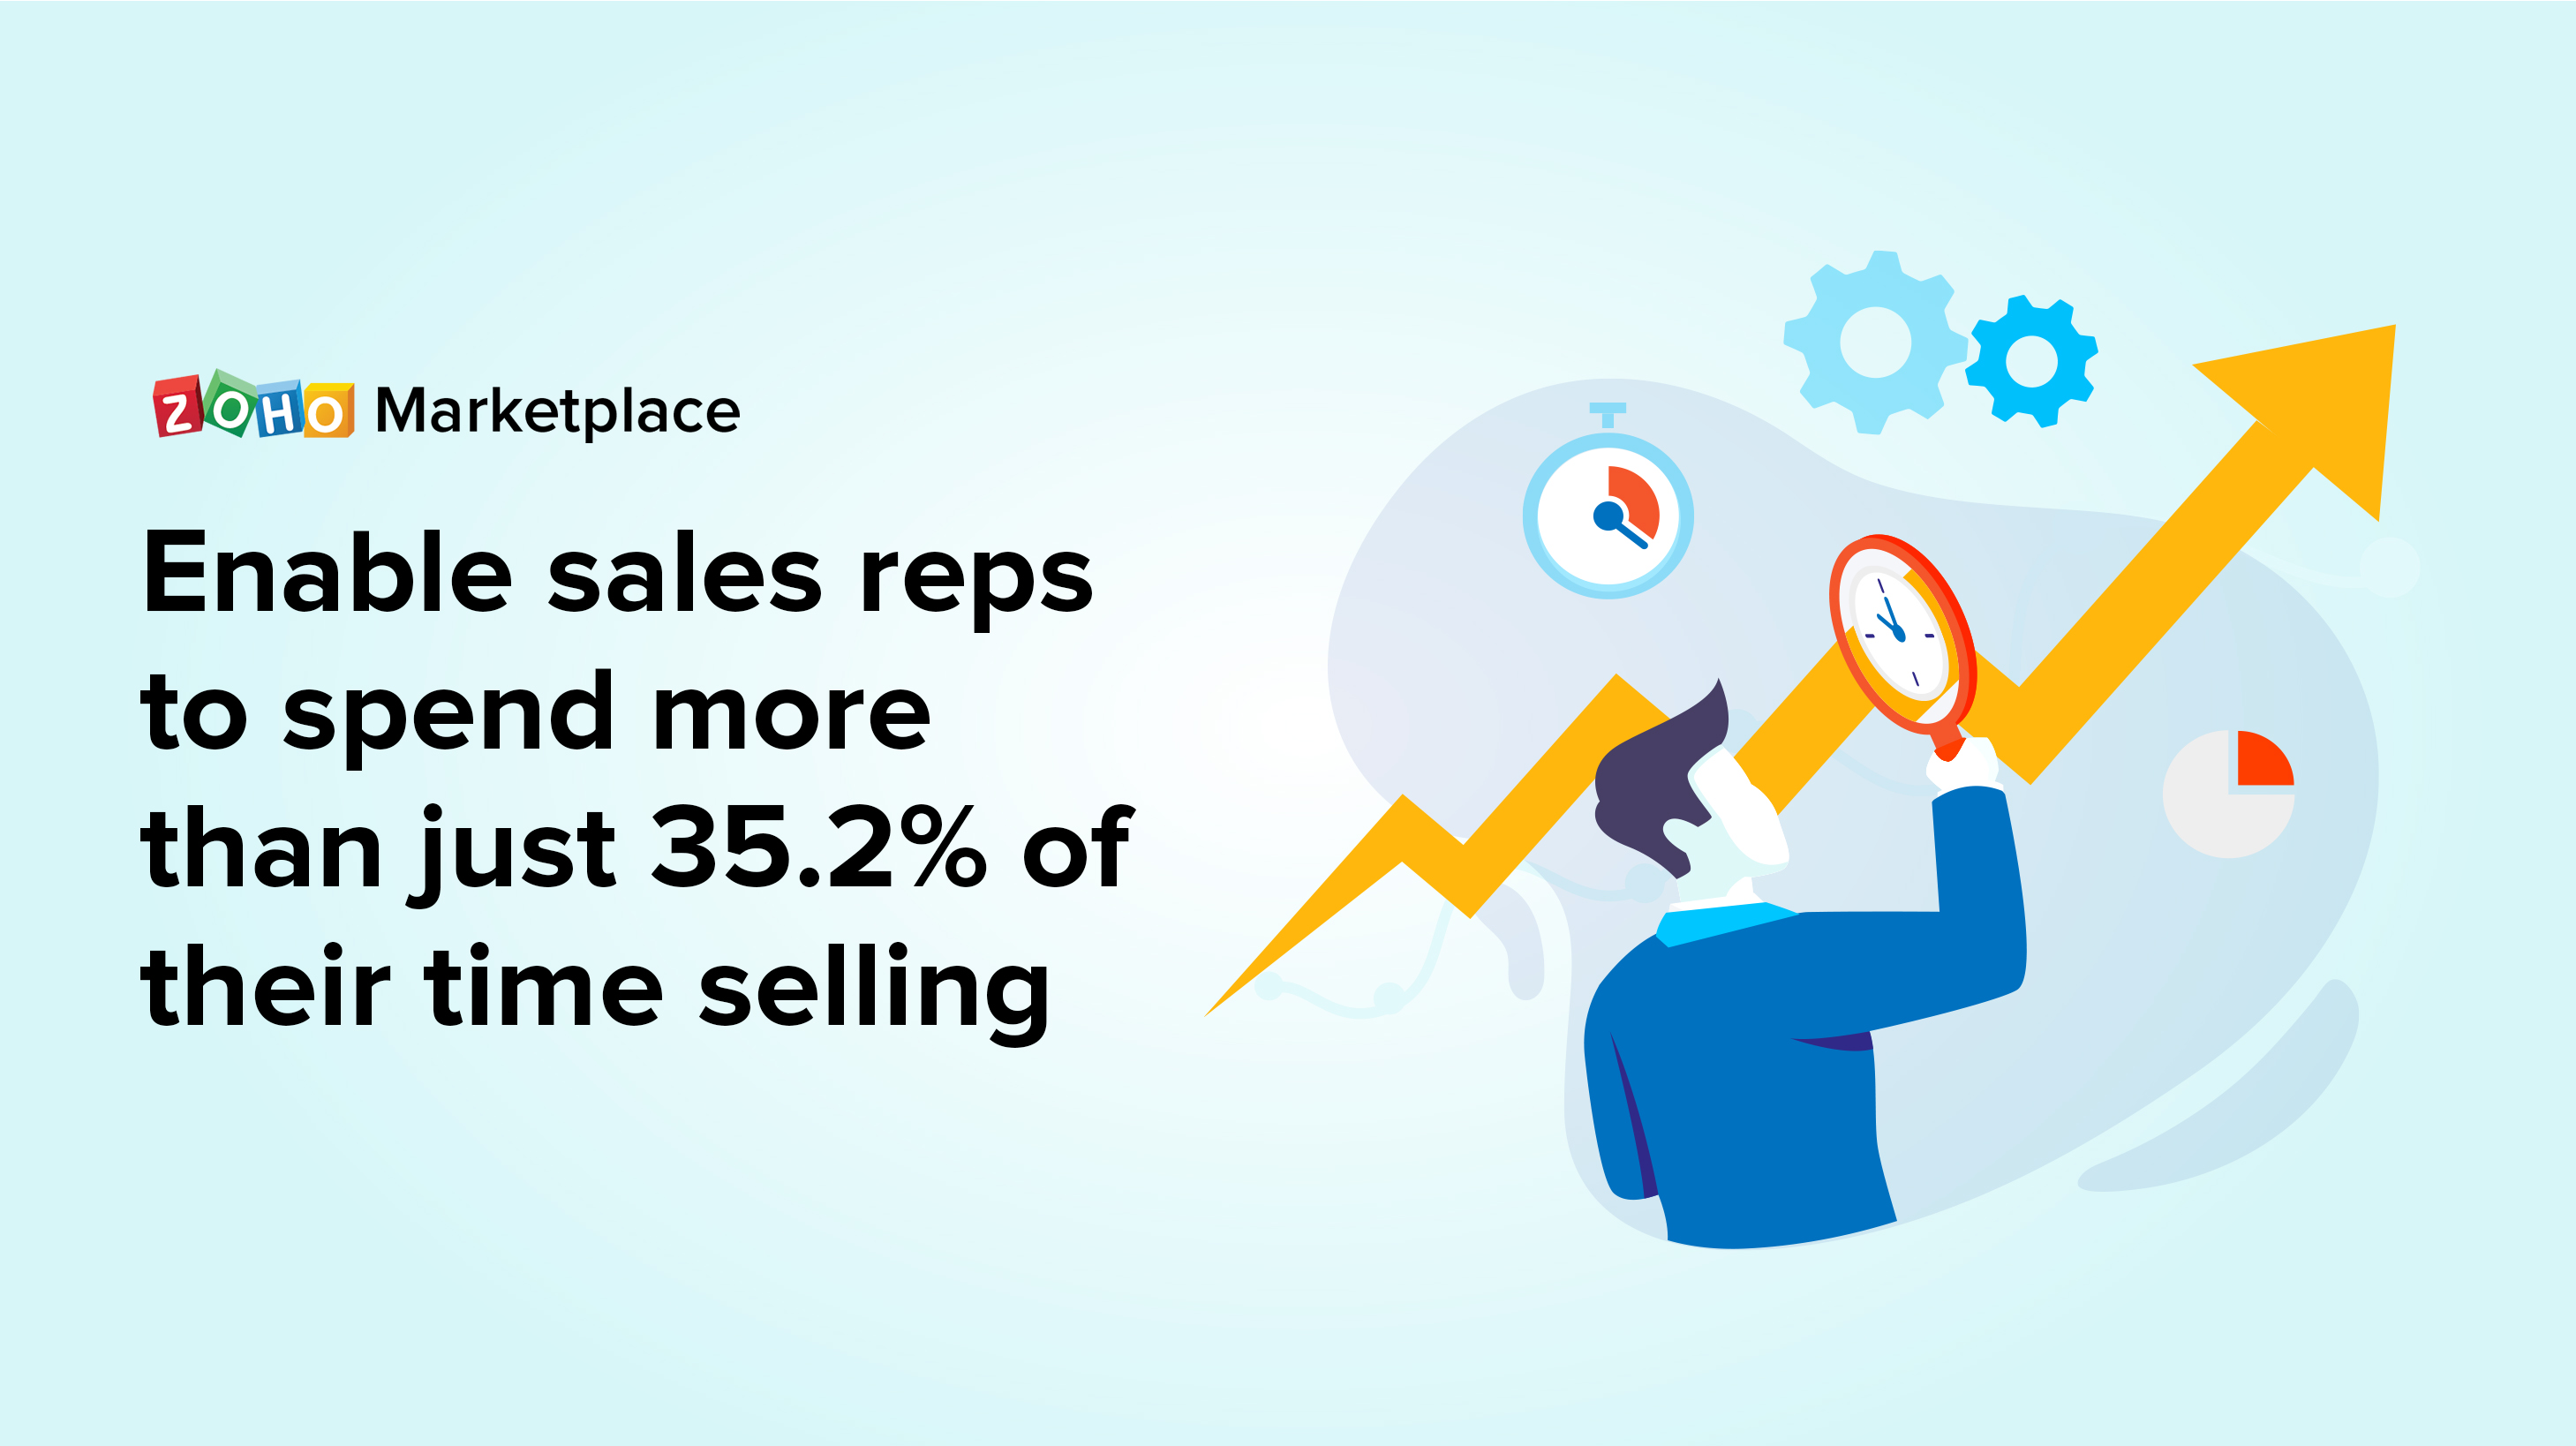 Strategies to enable sales reps to spend more time selling